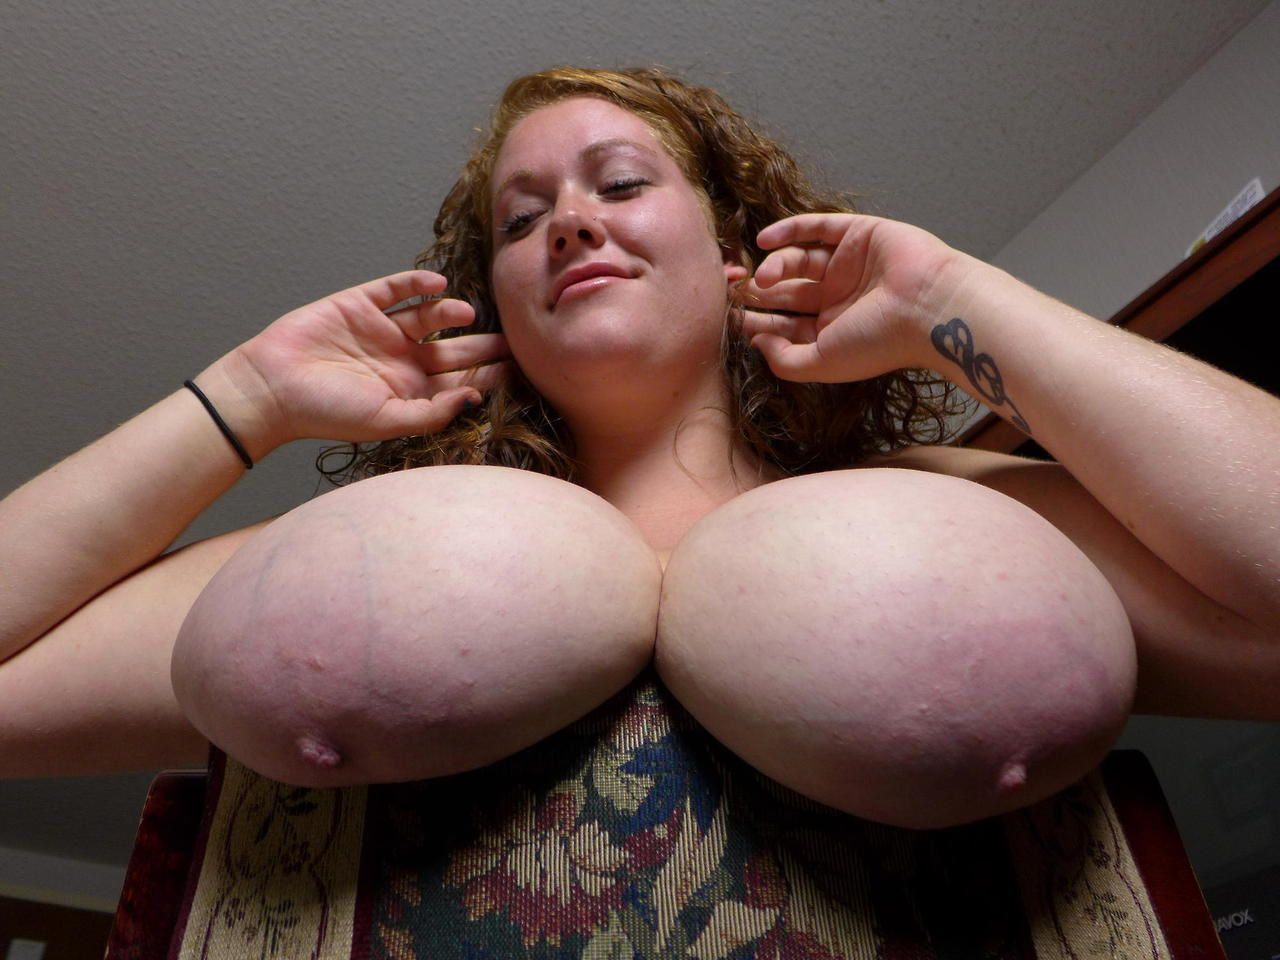 single professional and Starrocker1 bbw tribute bother sending